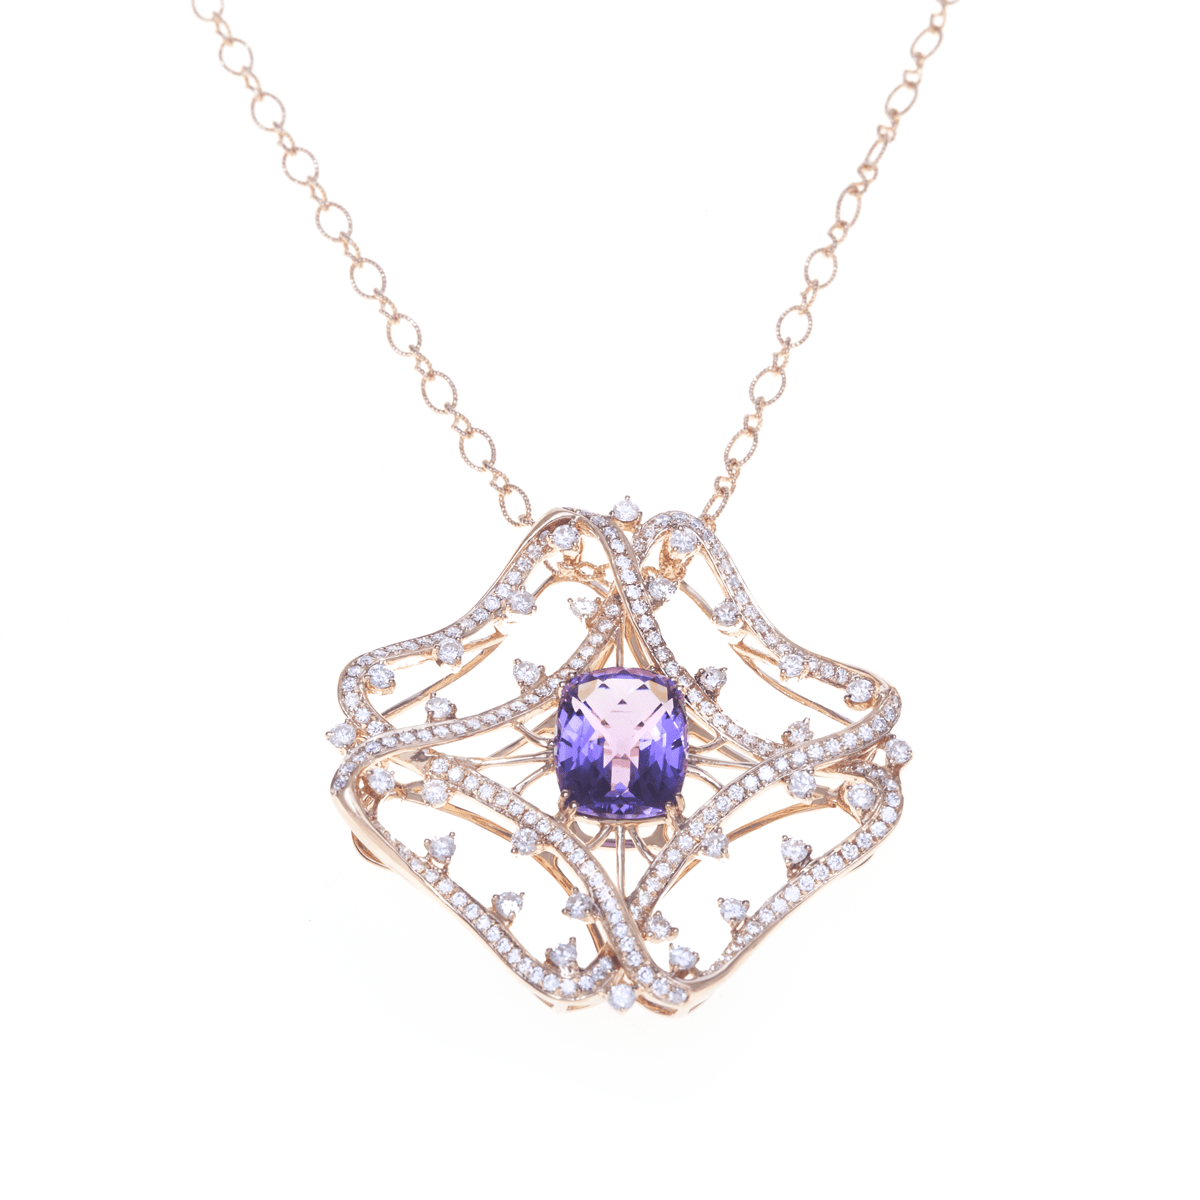 AMETHYST PENDANT - BUYOANT - Chris Aire Fine Jewelry & Timepieces